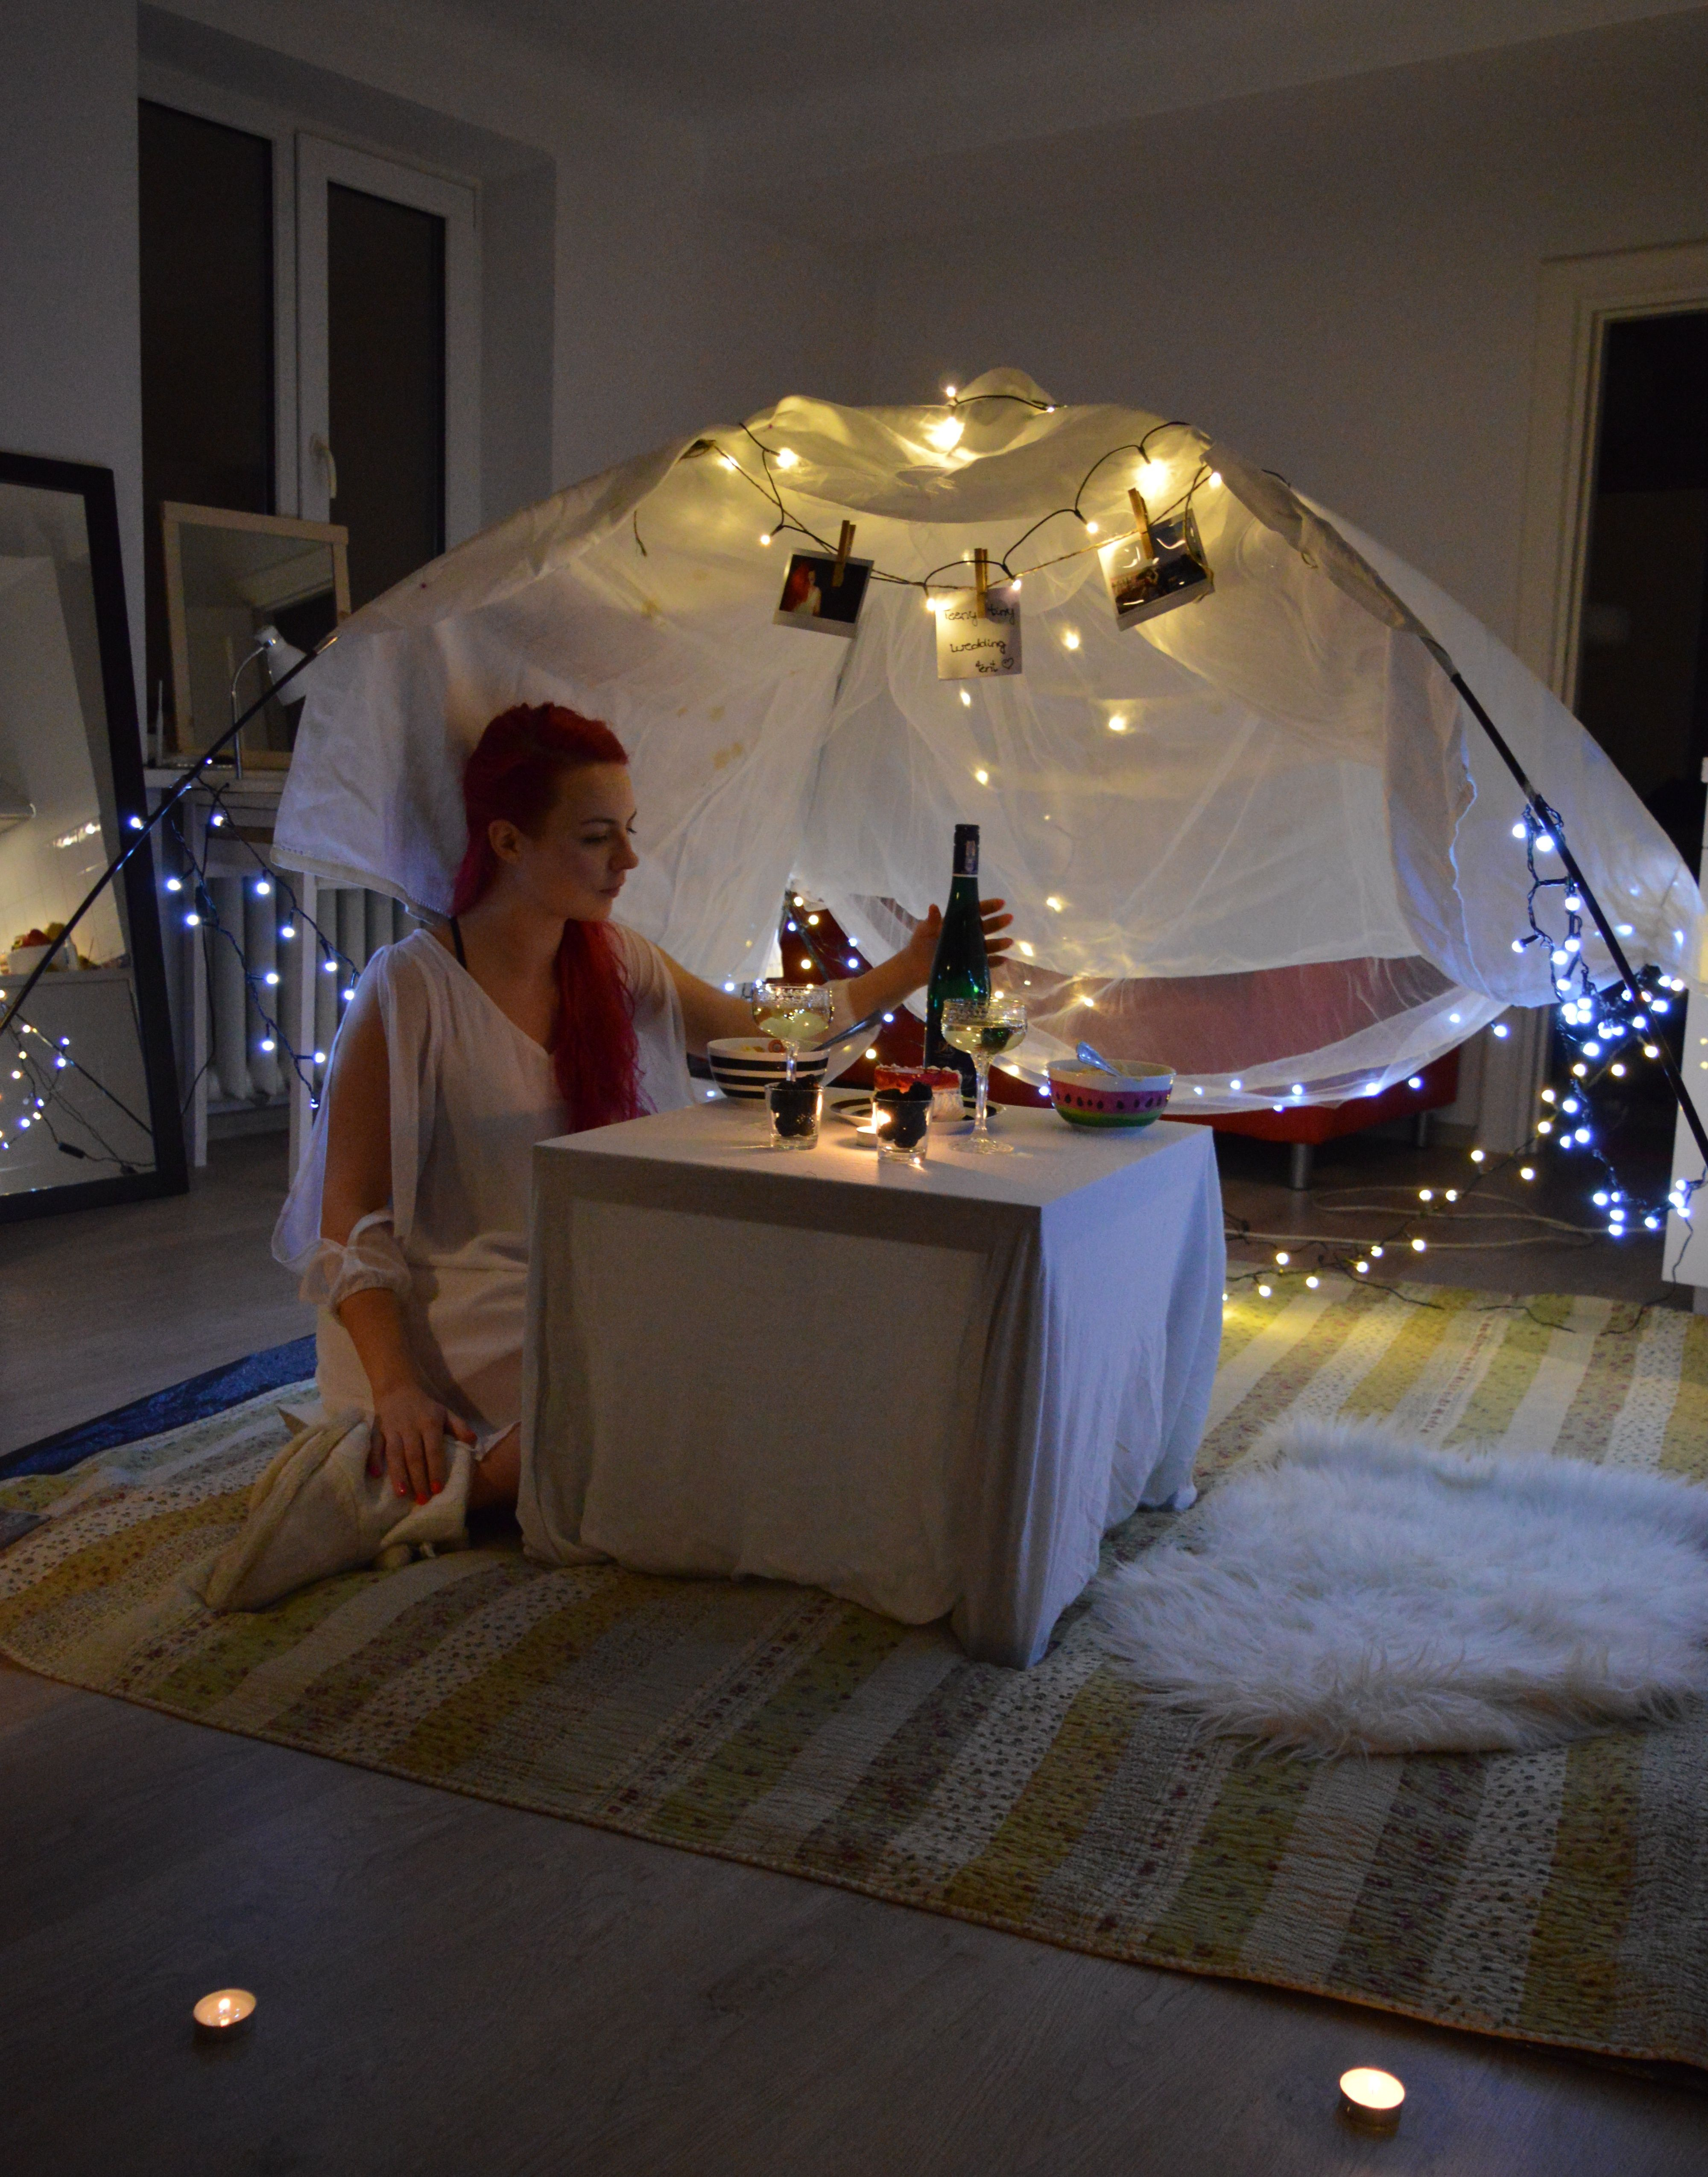 Cozy romantic surprise birthday dinner in the tent at home